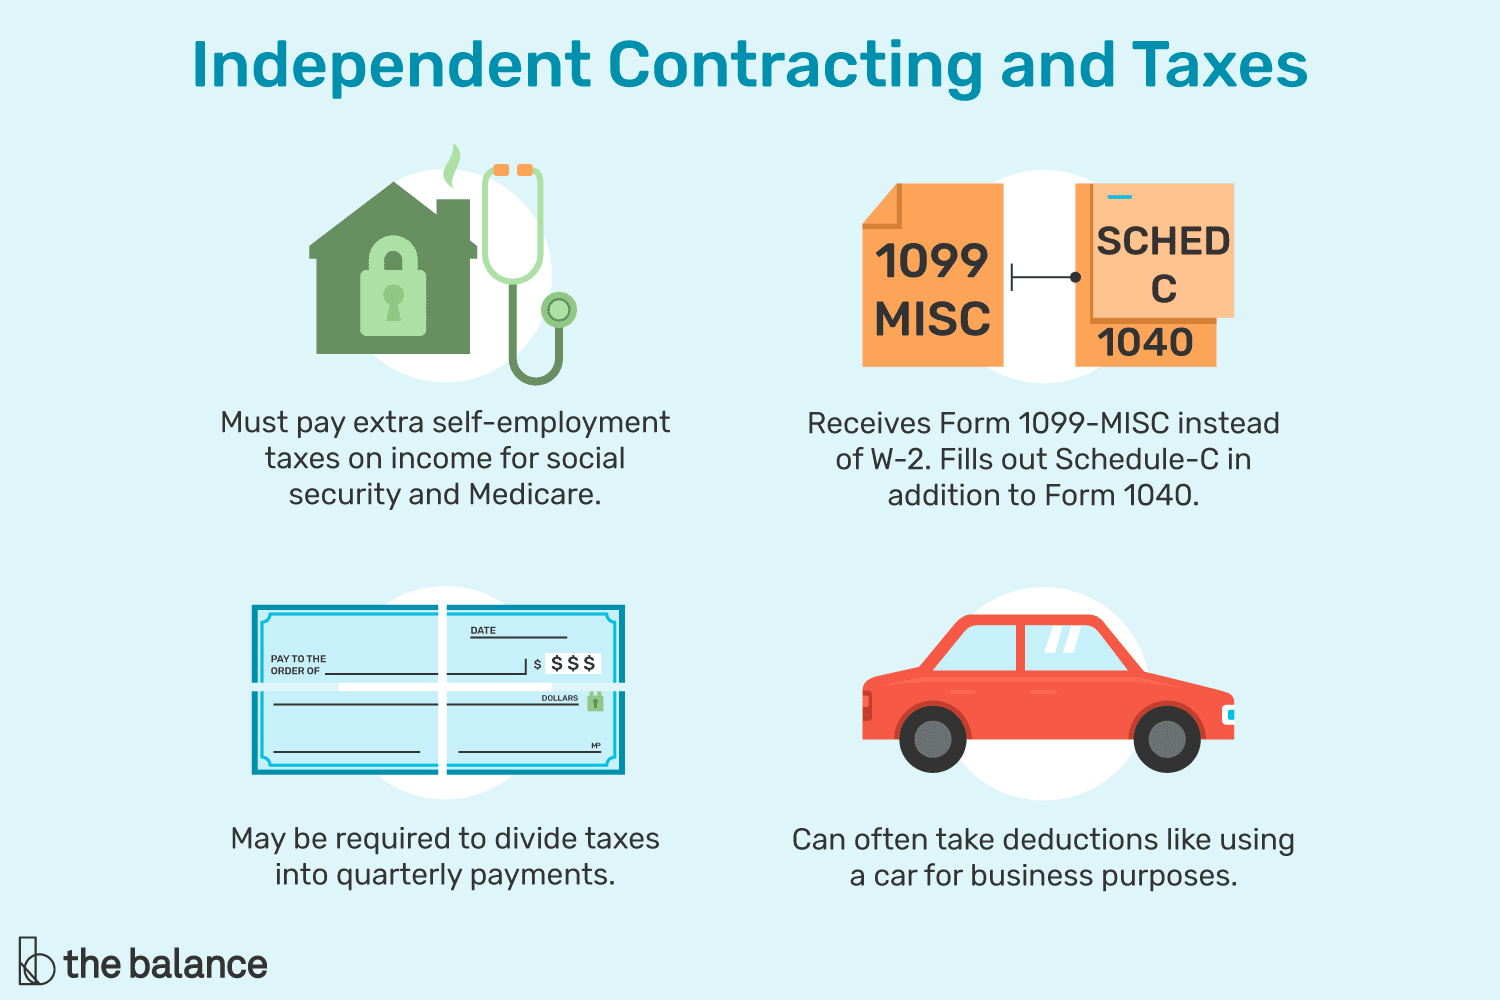 hight resolution of independent contracting and taxes illustration